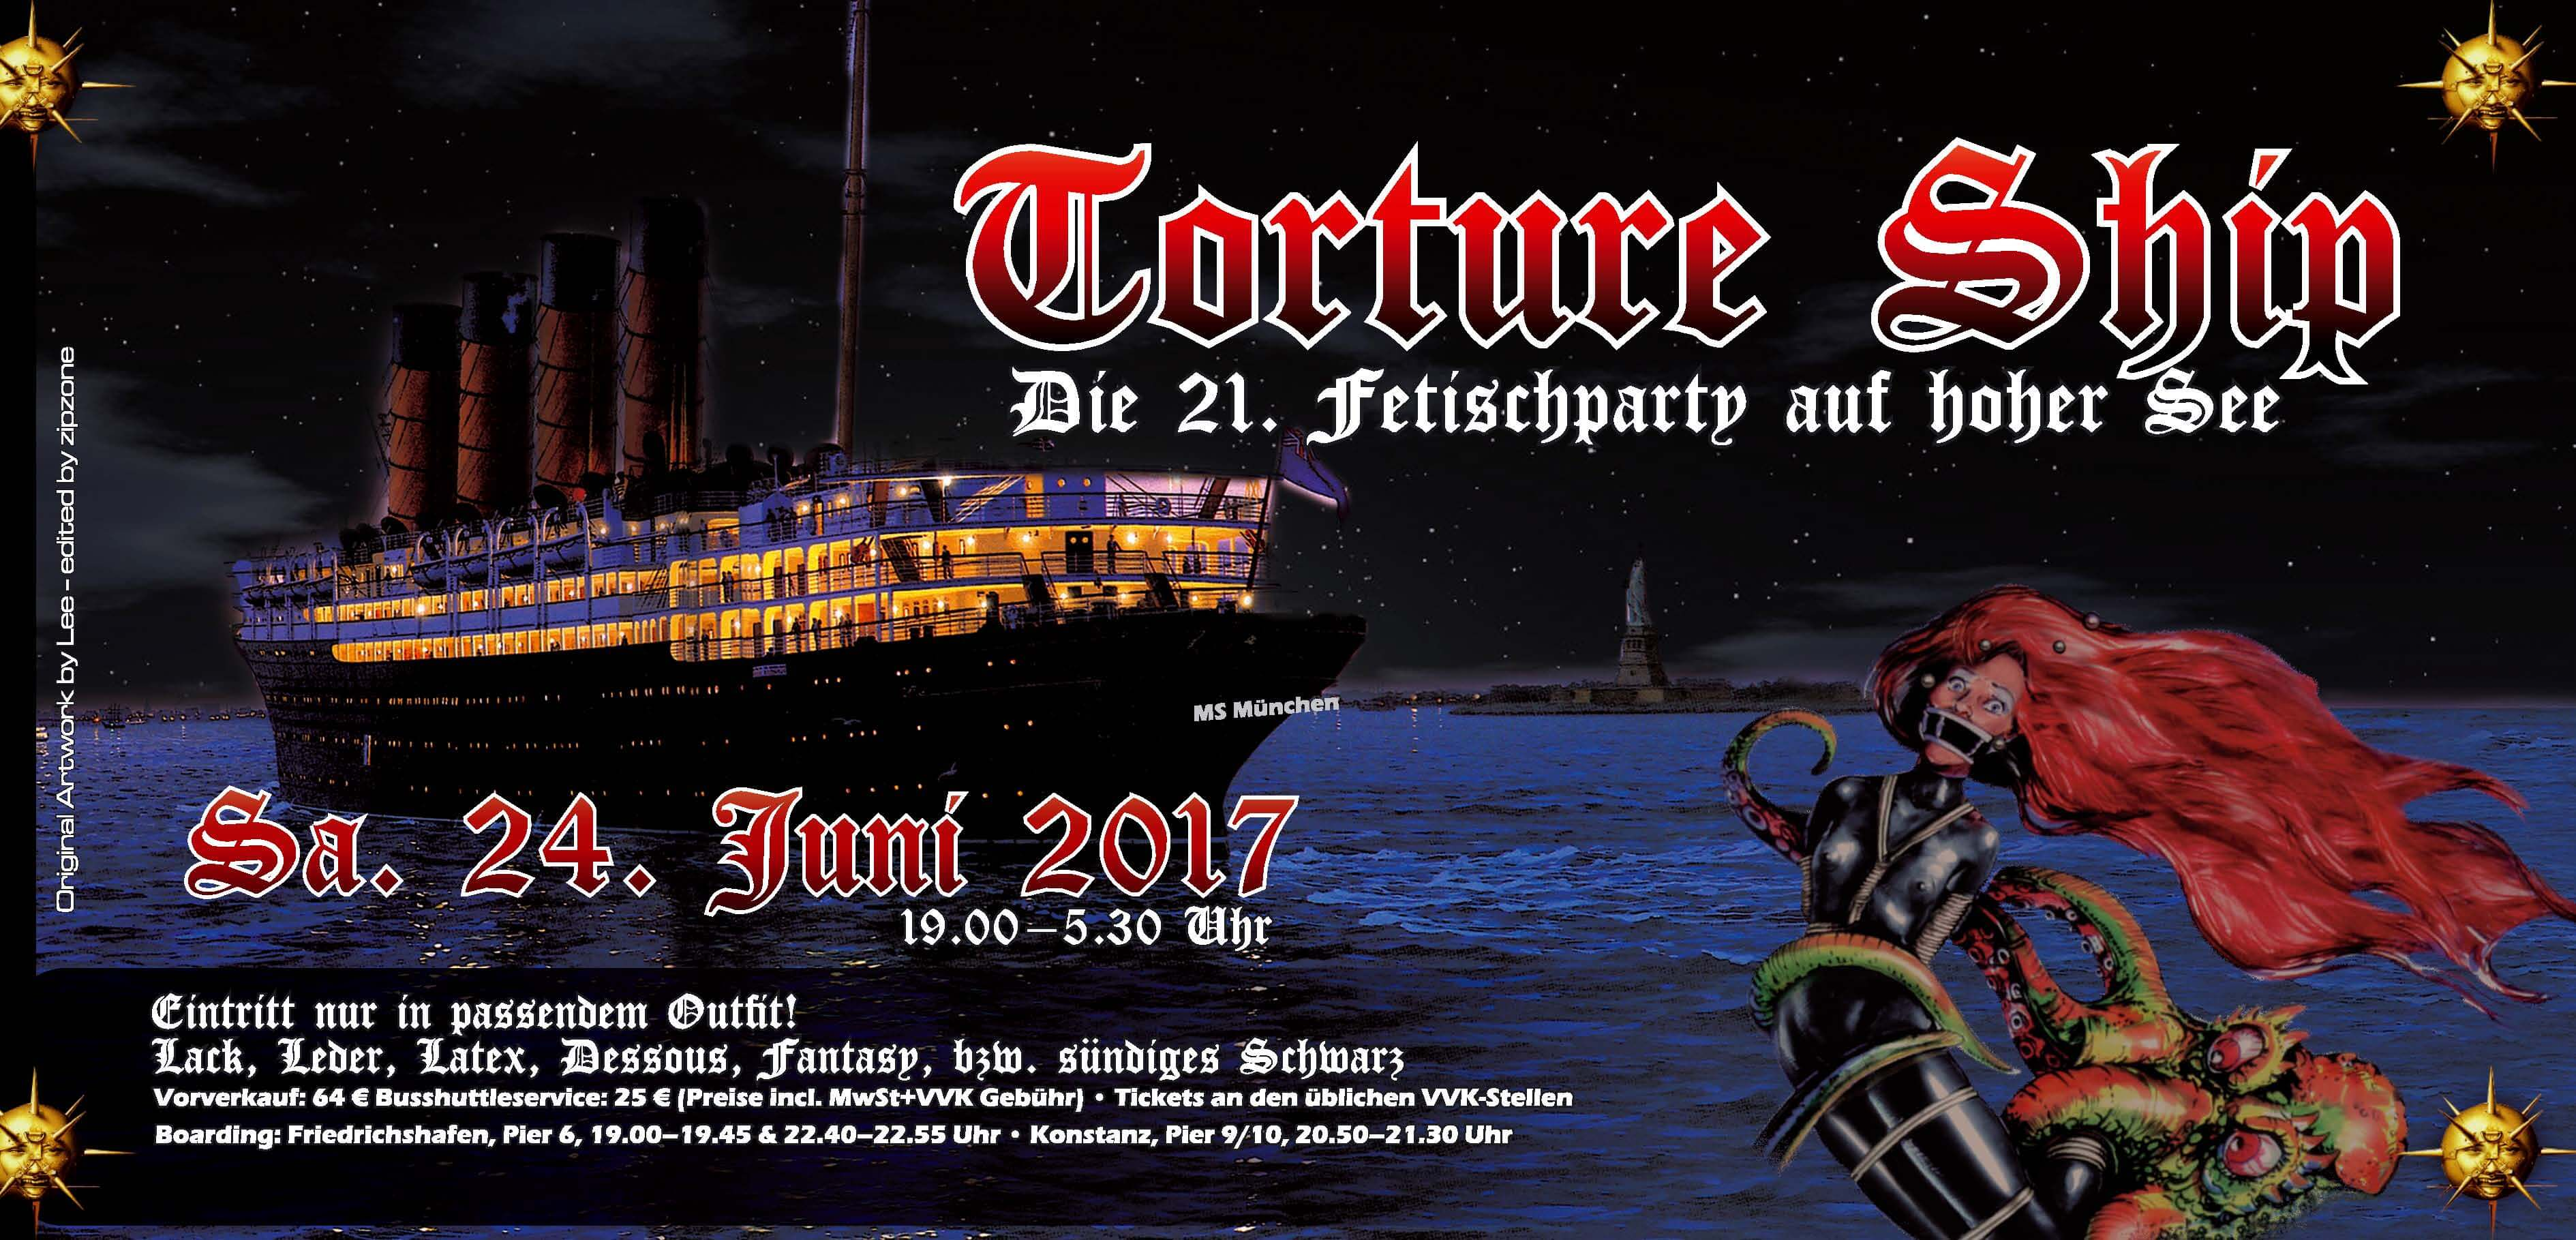 Mistress Amrita Main show at the pier in Konstanz with Dutch Dame  at Torture Ship  in Bodensee, Germany on 24 June 2017